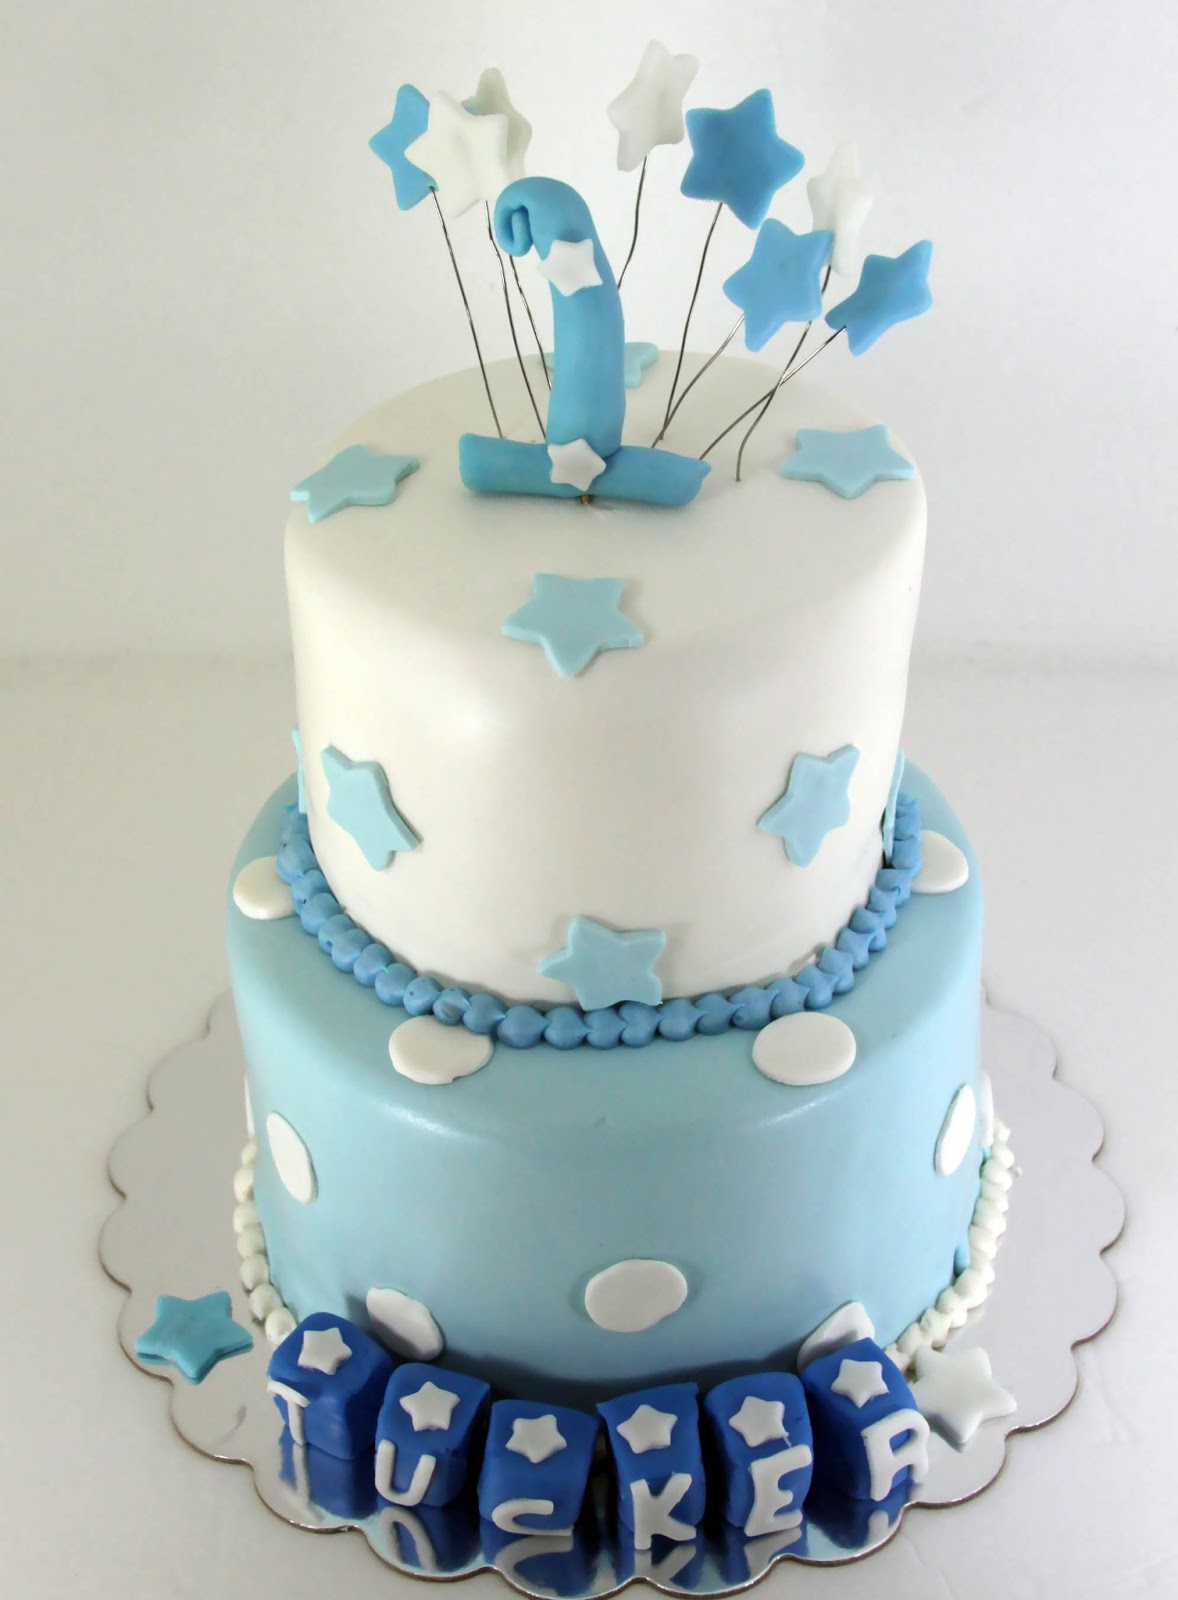 Birthday Cake Design For A Baby Boy : Tastefully Done: Baby Boy Blue 1st Birthday Cake